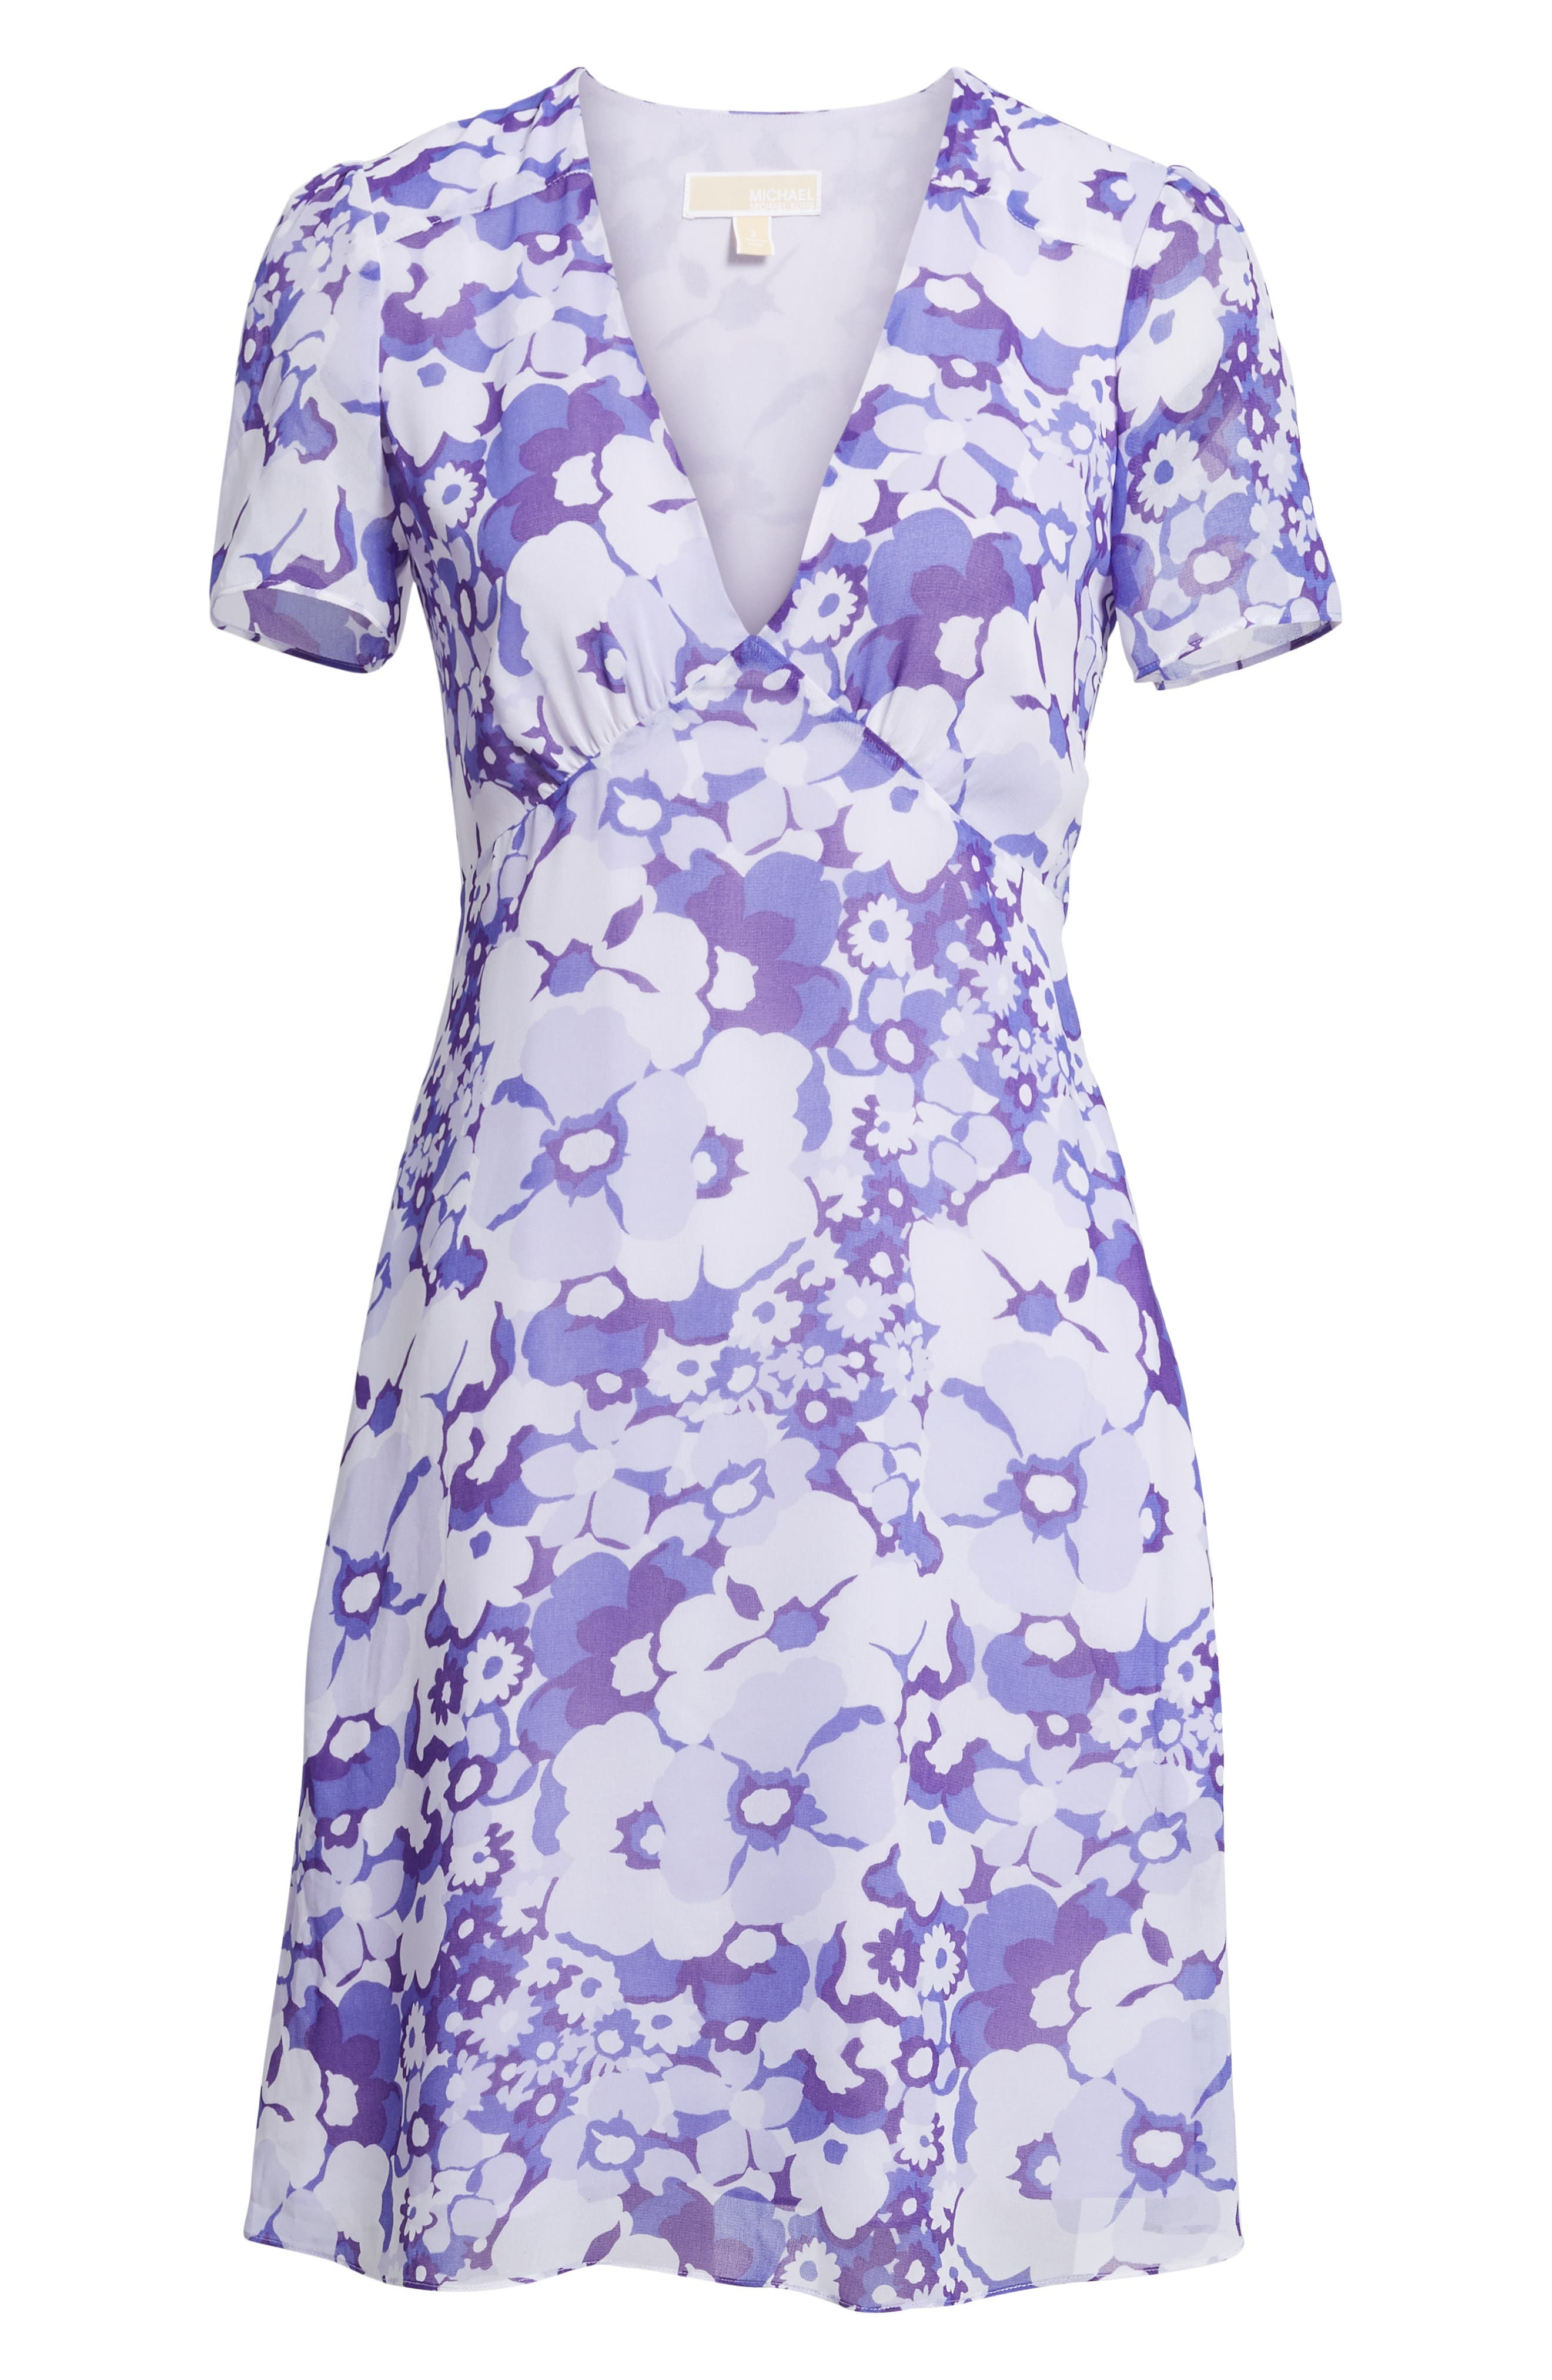 Springtime Floral Dress,                             Alternate thumbnail 6, color,                             Amethyst/ Light Quartz Multi